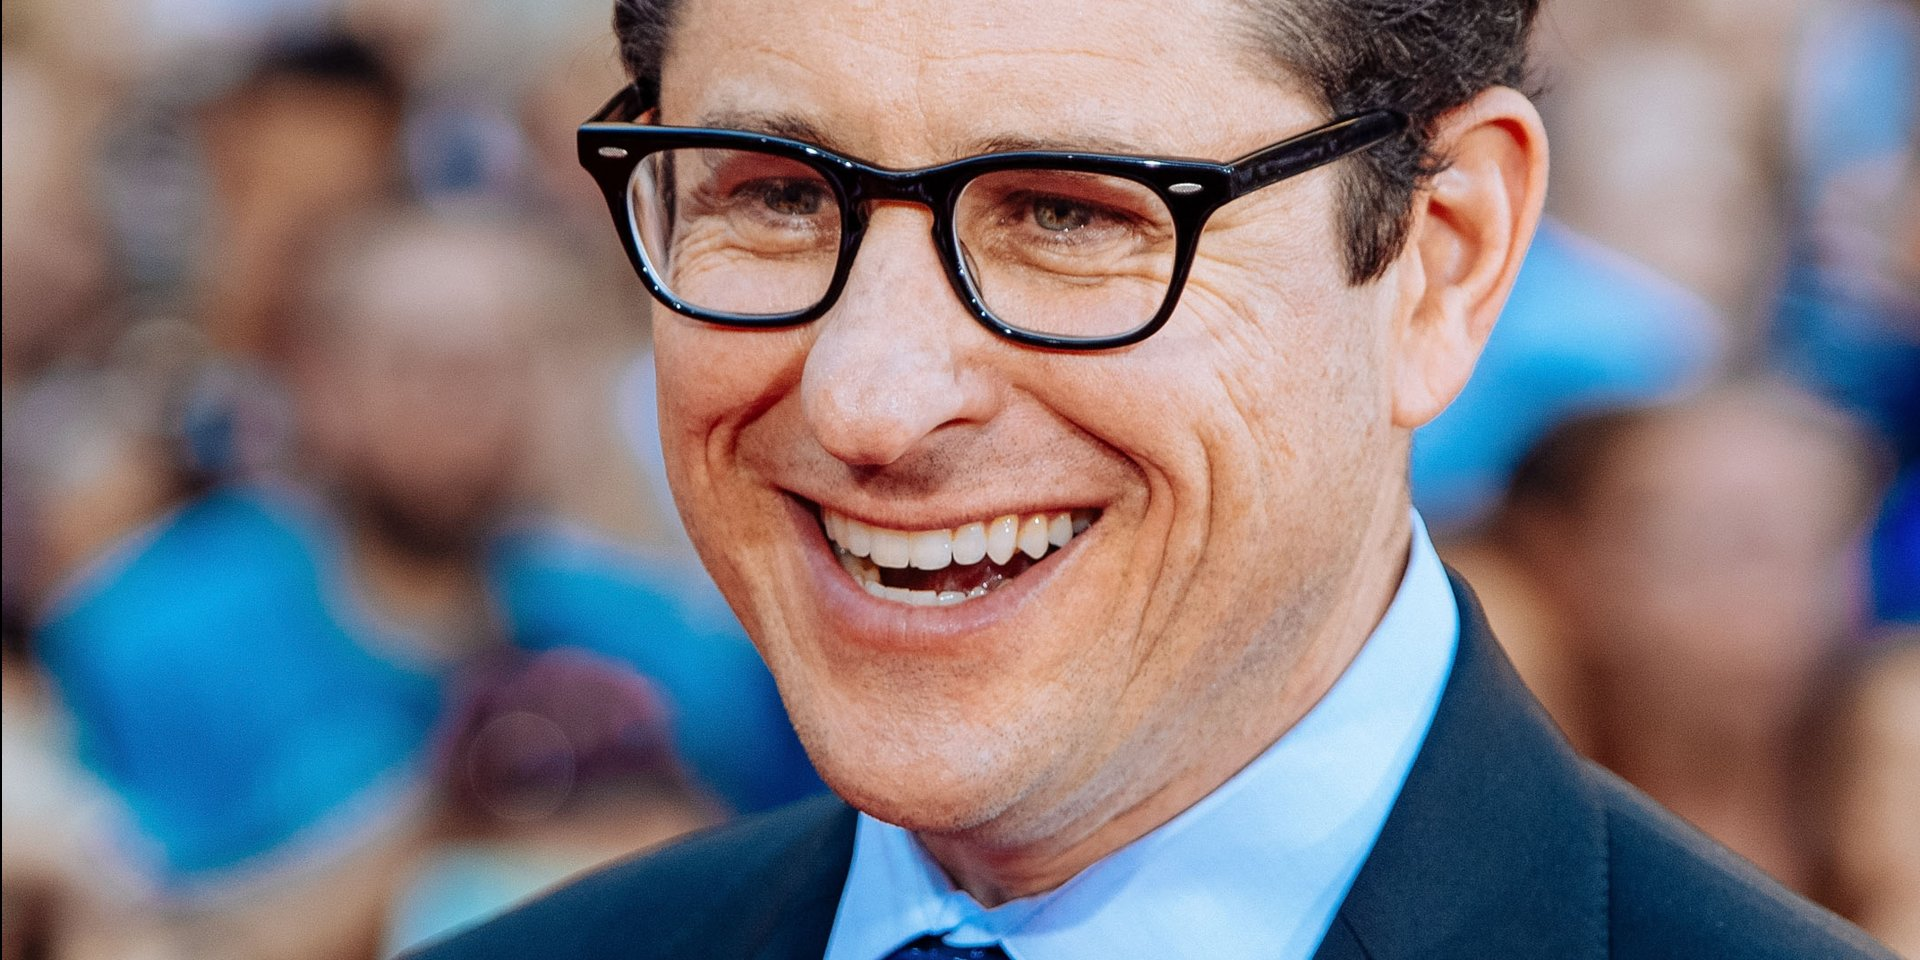 WarnerMedia has landed J.J. Abrams in a deal reportedly worth hundreds of millions